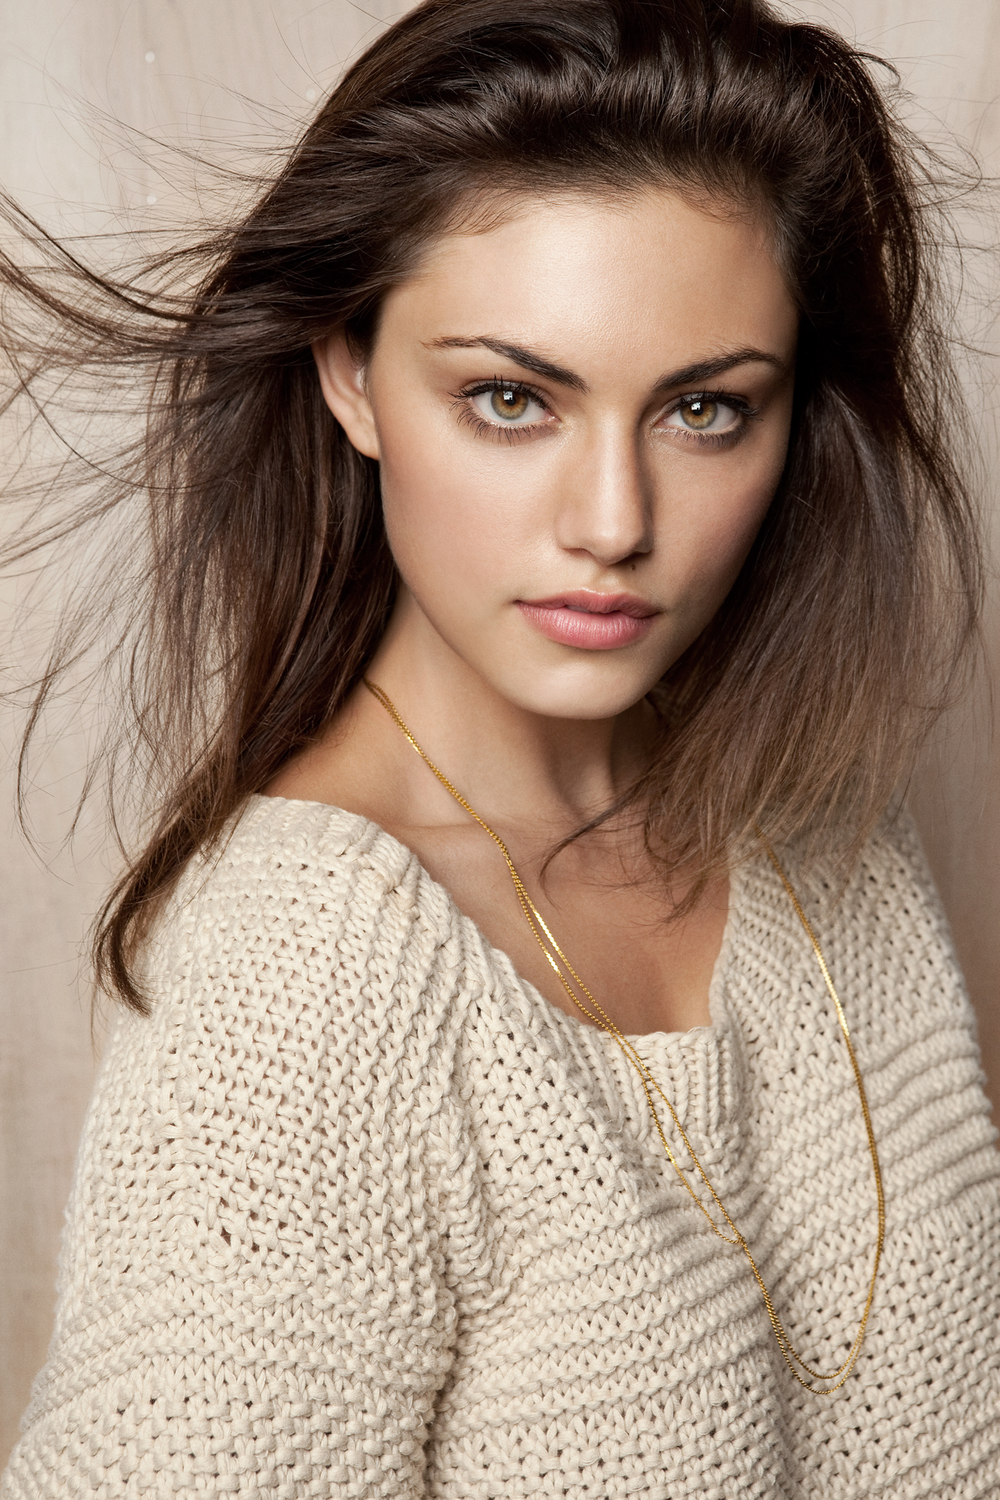 Pictures Phoebe Tonkin nudes (74 photo), Topless, Hot, Twitter, butt 2006